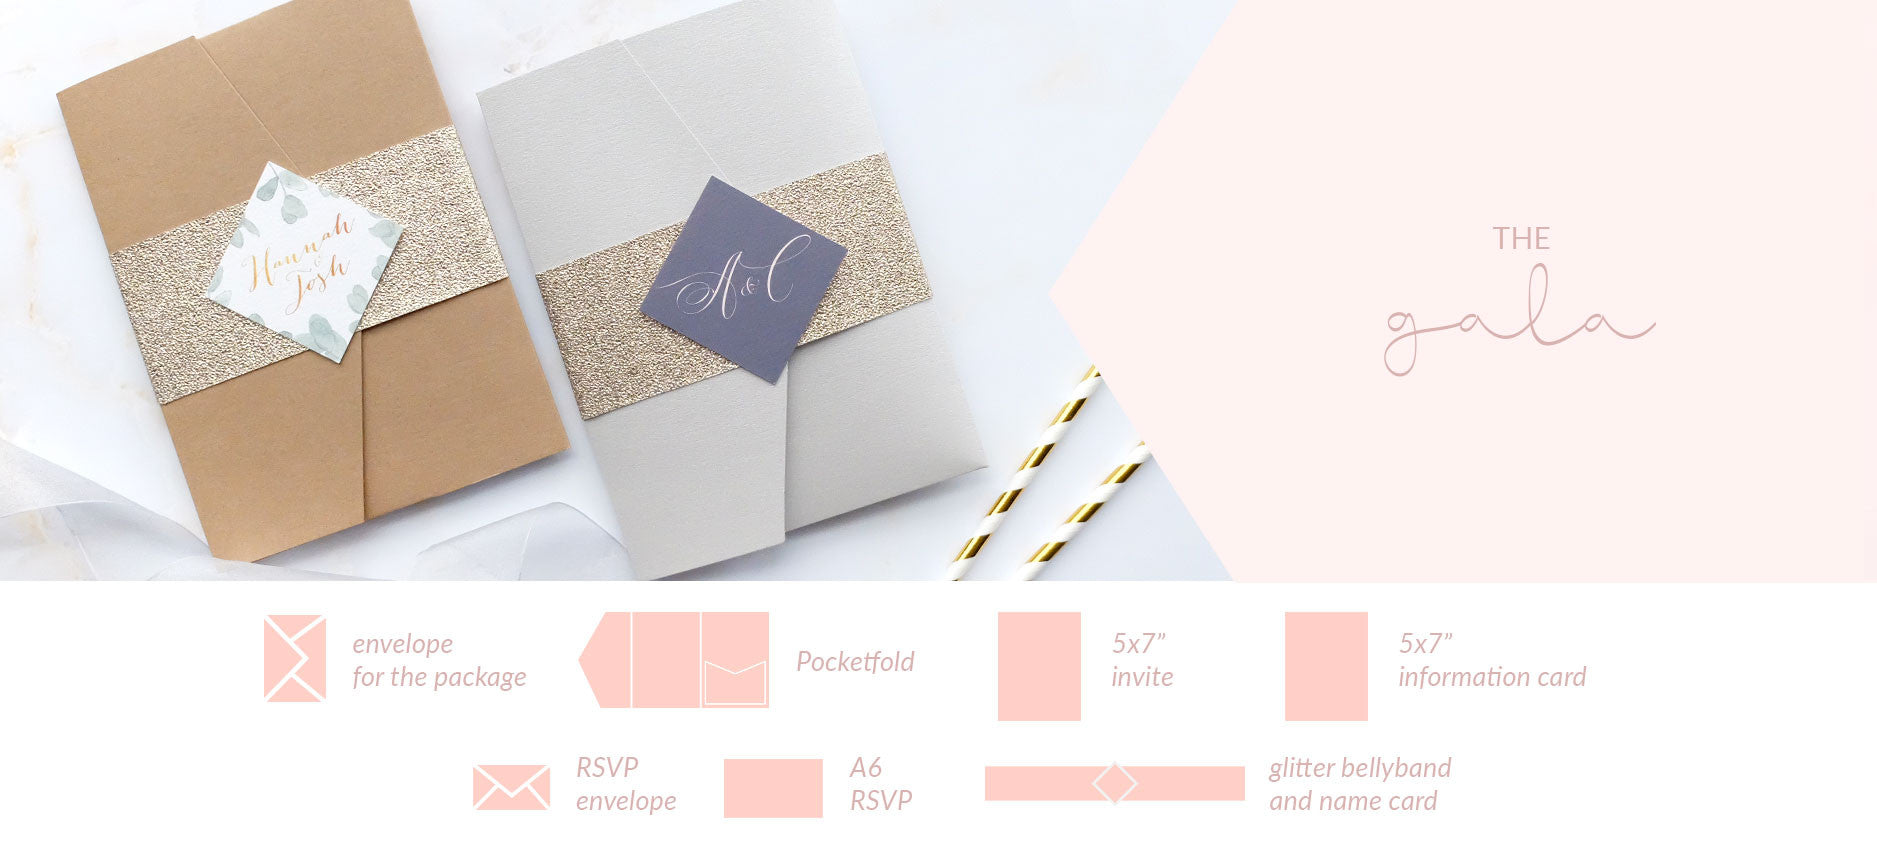 glitter bellyband and pocketfold wedding invitation packages blush